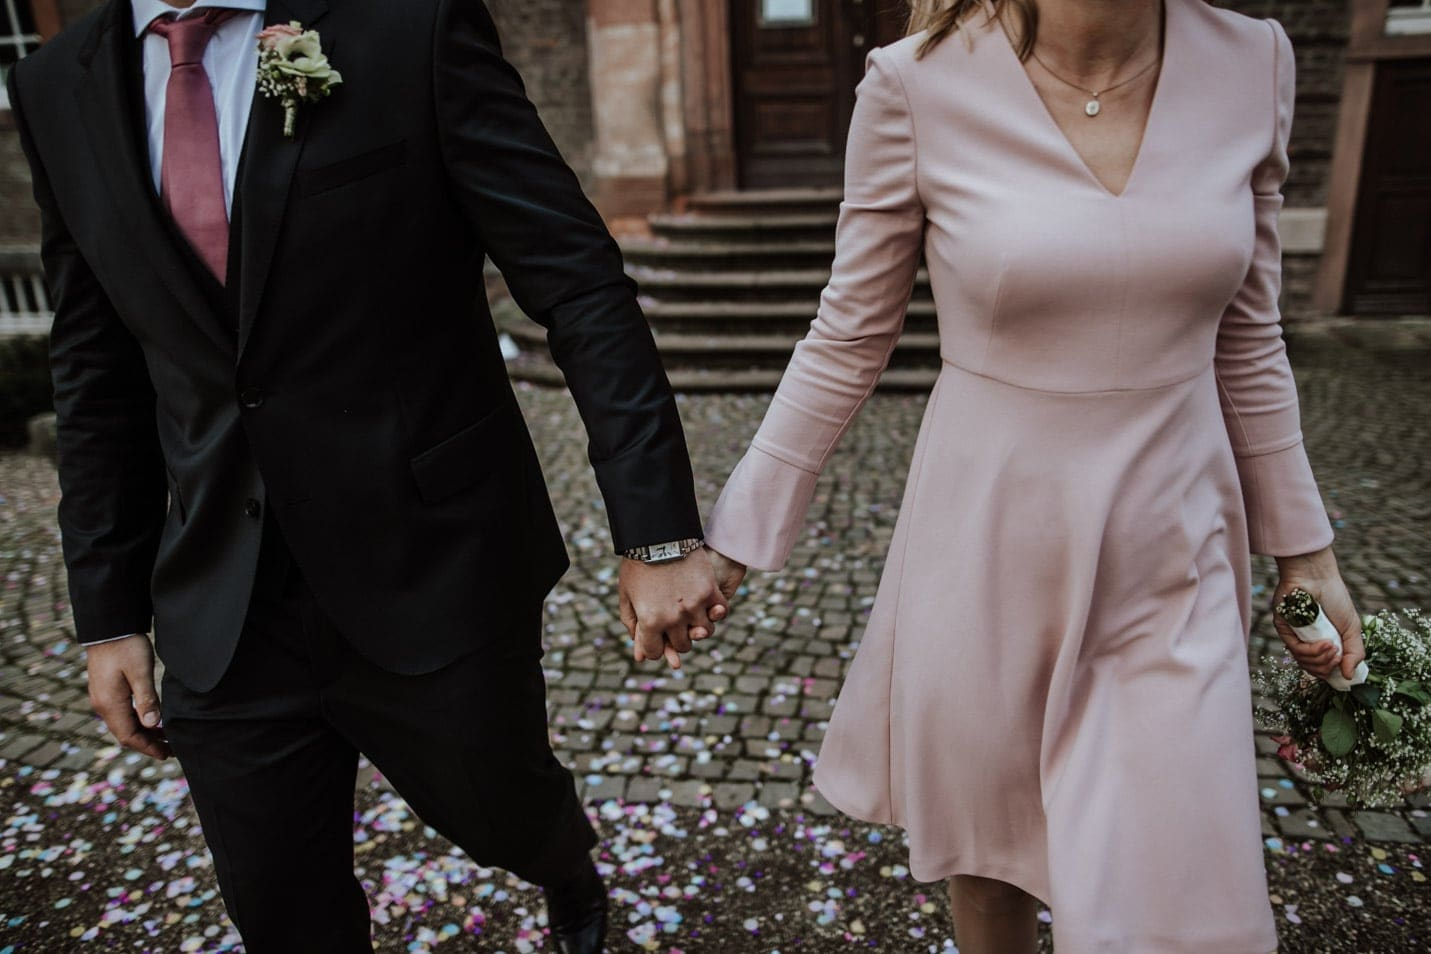 Hand in Hand Schloss Wahn Heiraten